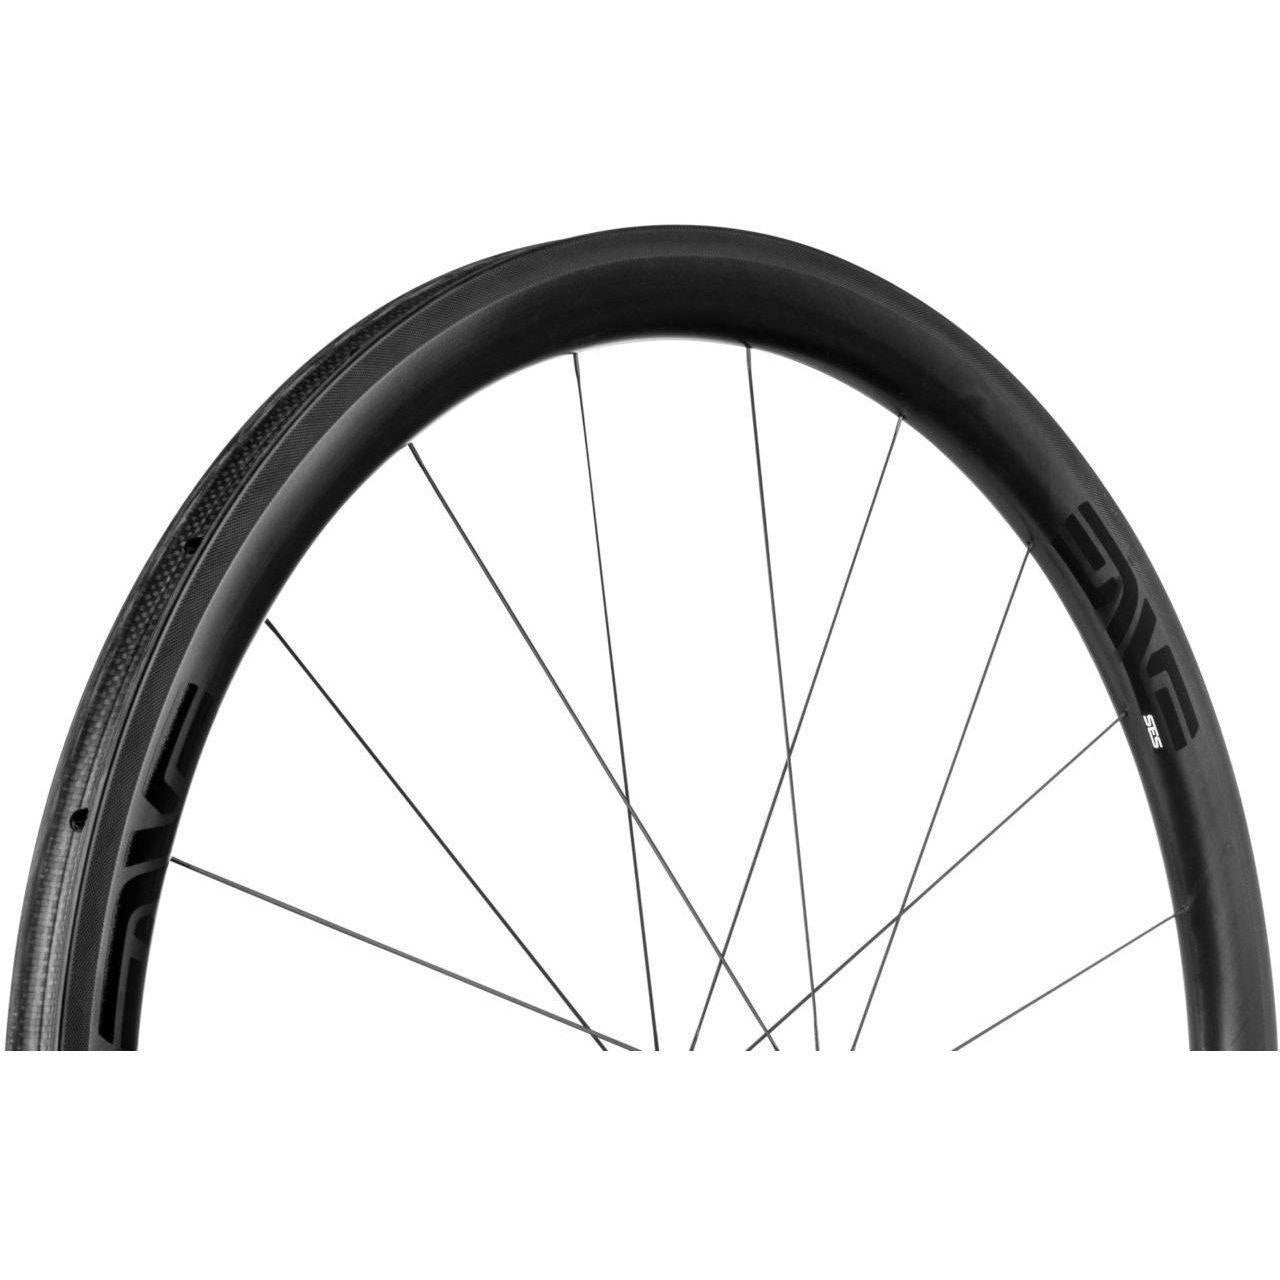 ENVE-ENVE SES 3.4 Rim - Rim Brake--saddleback-elite-performance-cycling